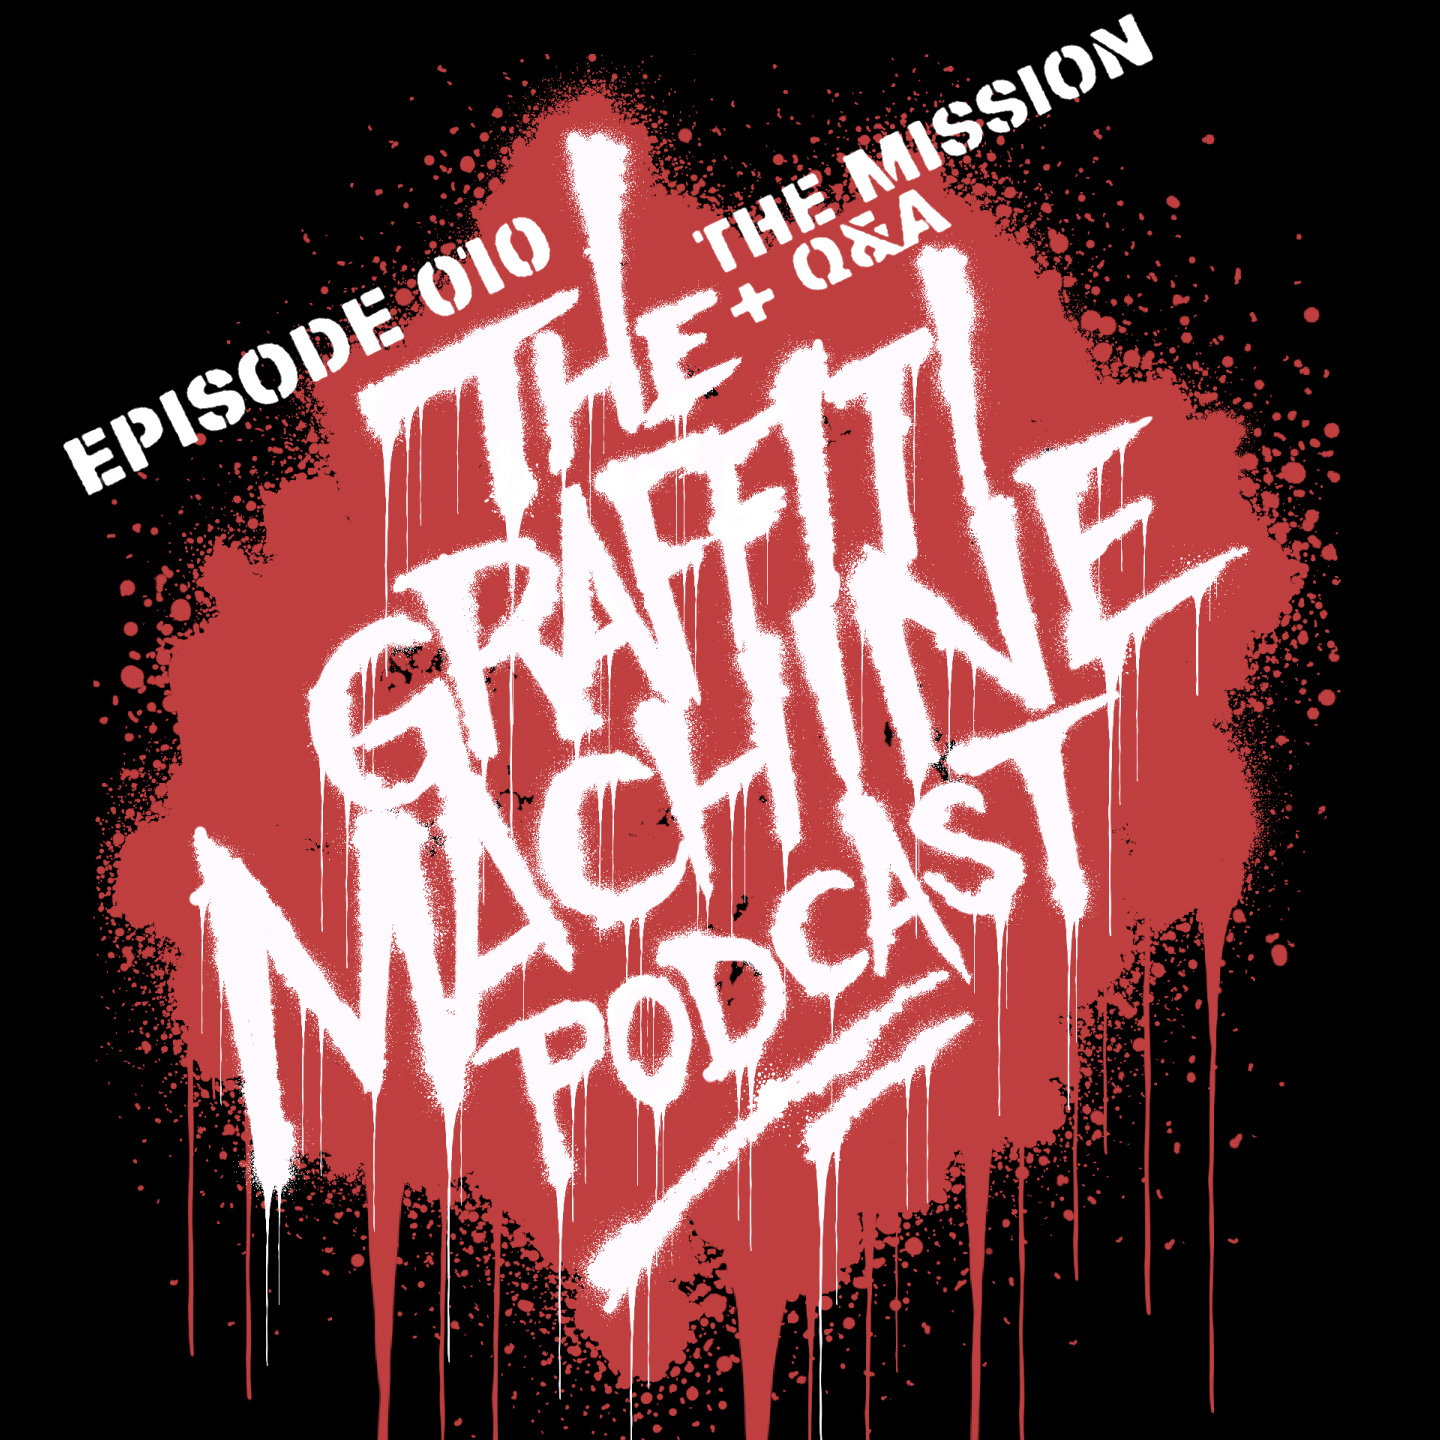 010: The Mission + Q&A